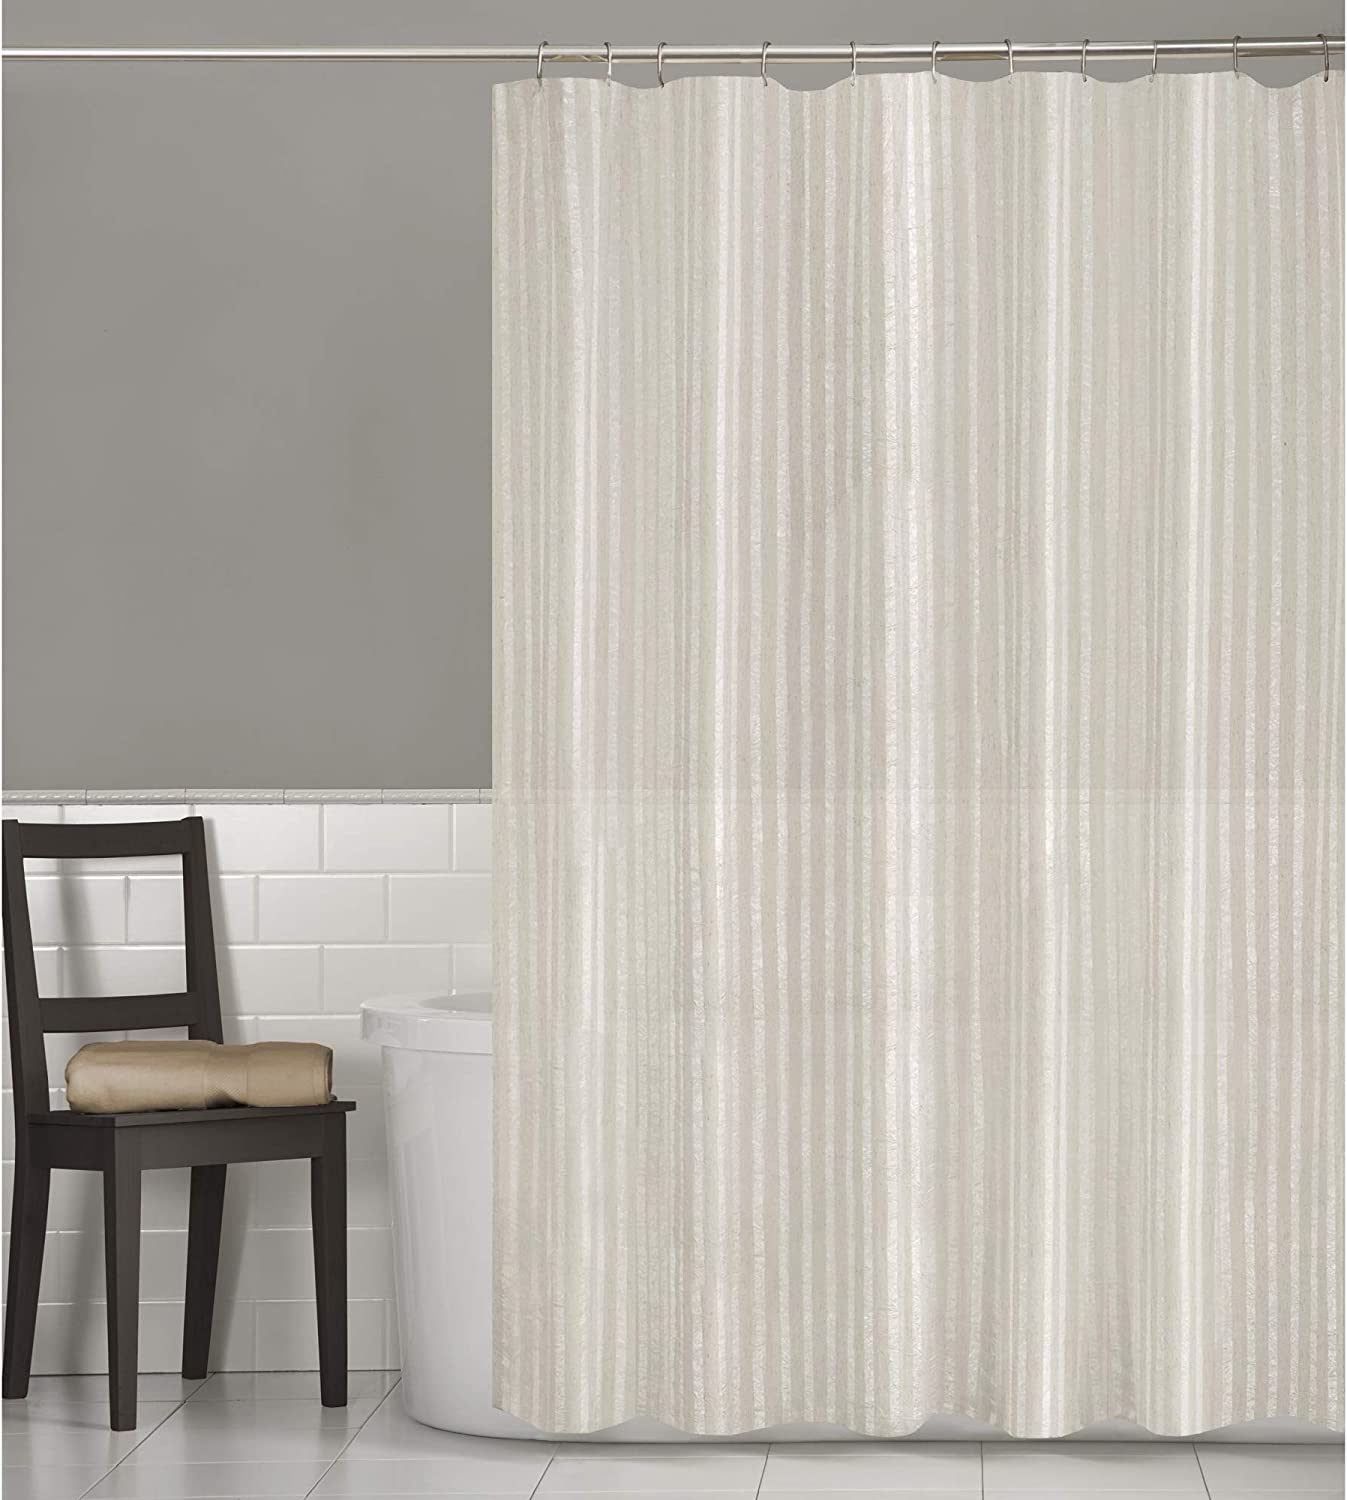 Wide yellow stripes Fabric Waterproof Shower Curtain Panel Sheer With Hooks Set